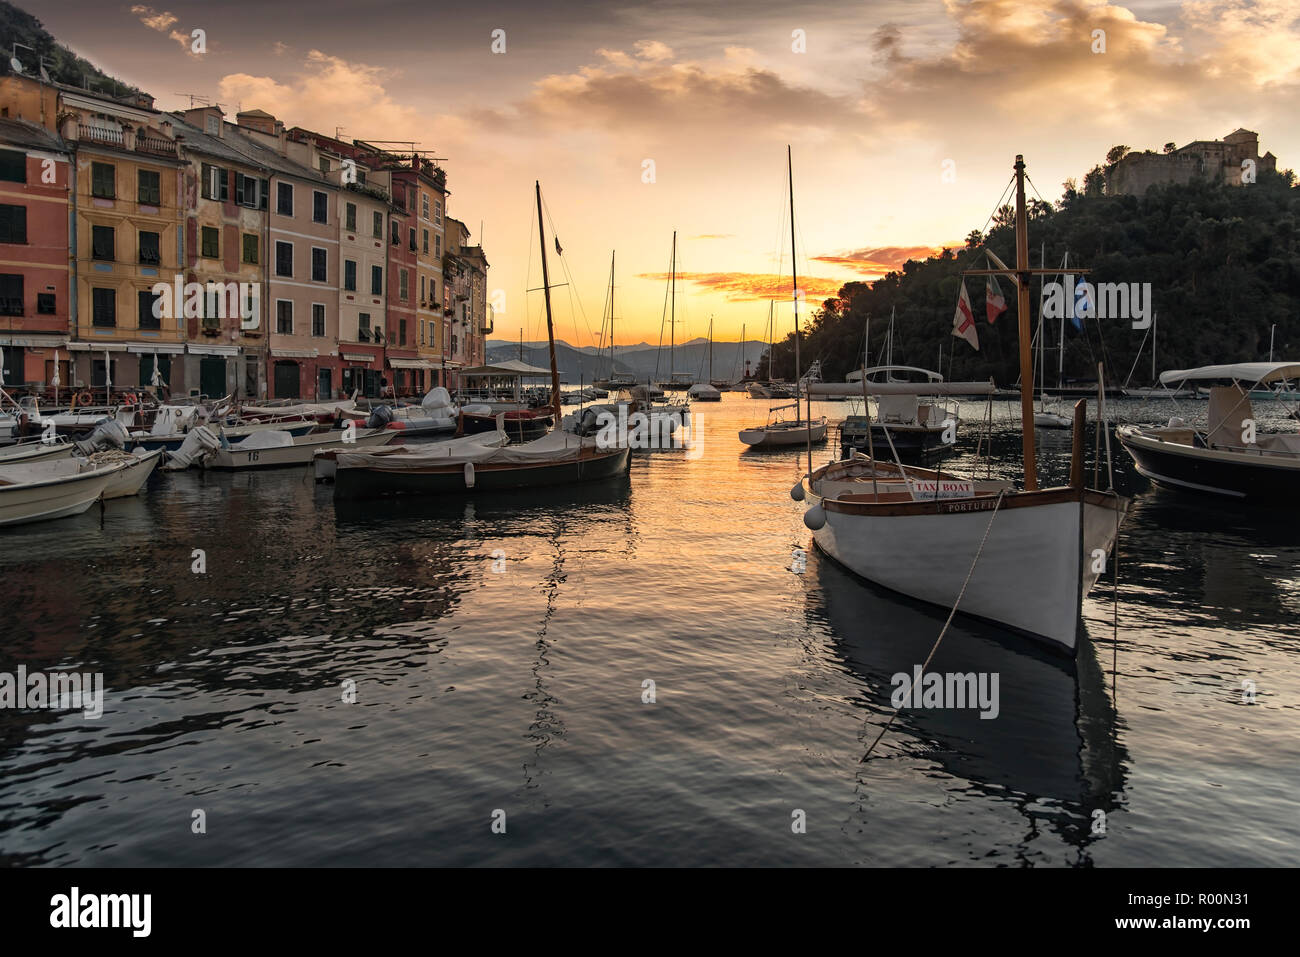 Scenic sunset over the harbour Portofino on the Italian Riviera with colorful ornage sky reflected on the water and moored sailboats and fishing boats - Stock Image